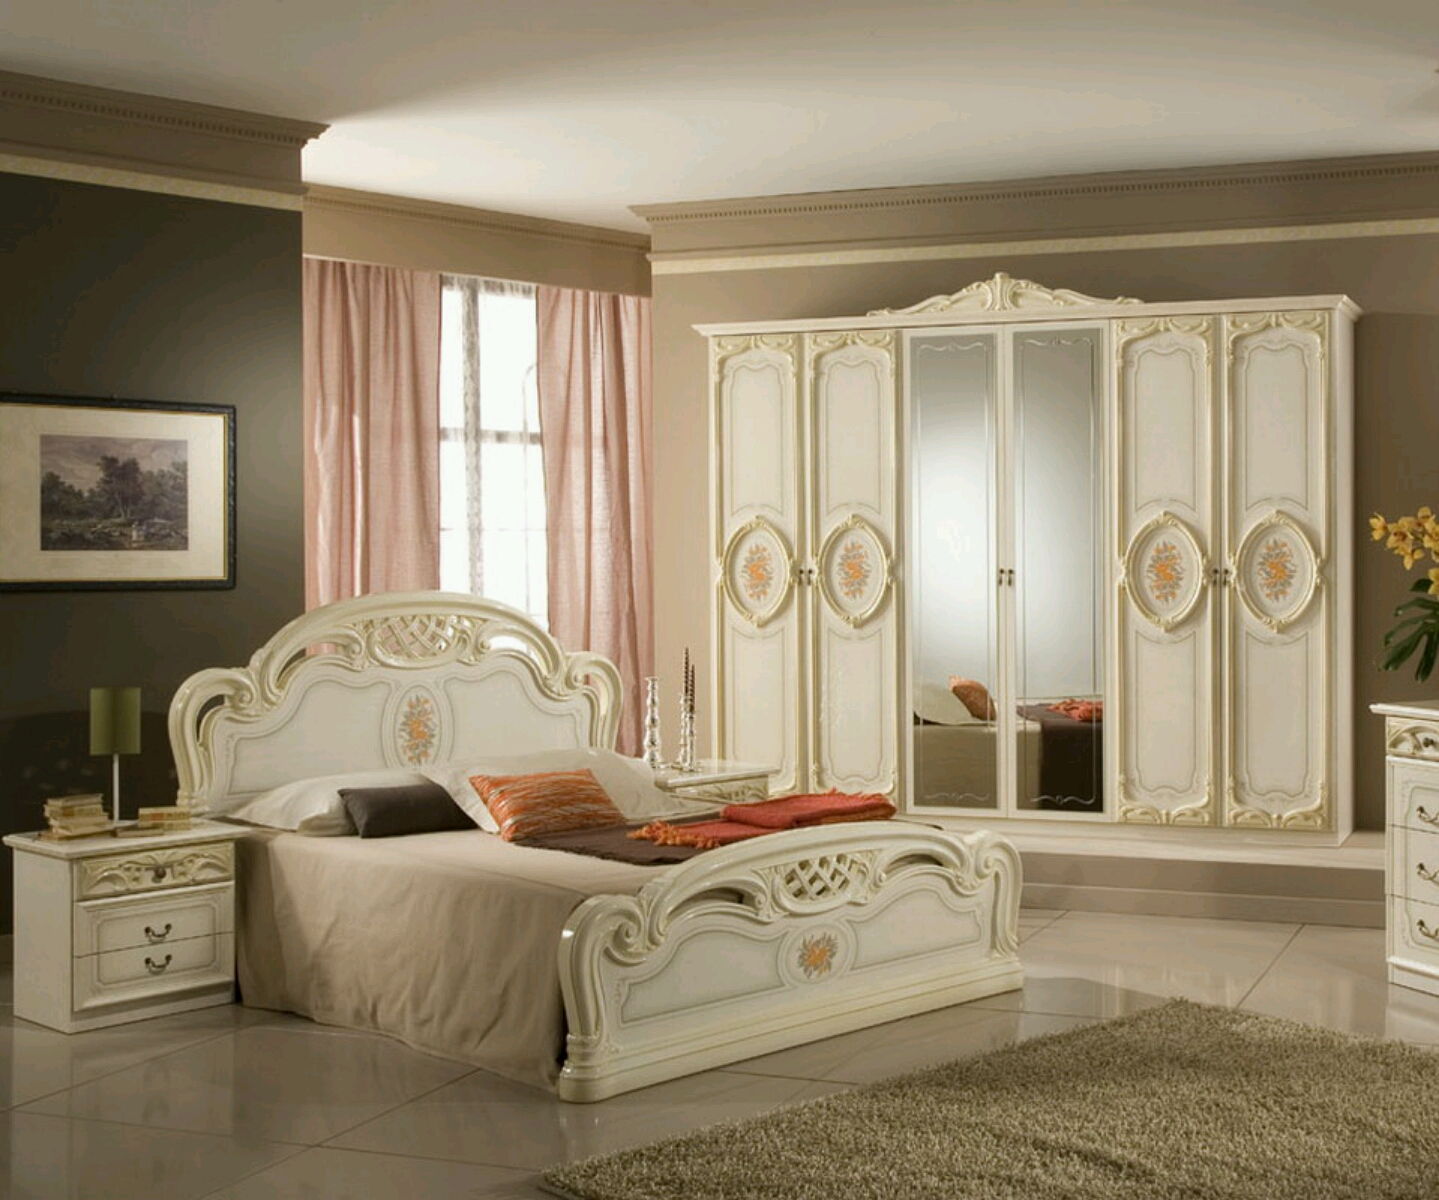 Modern luxury bedroom furniture designs ideas vintage for Furniture design